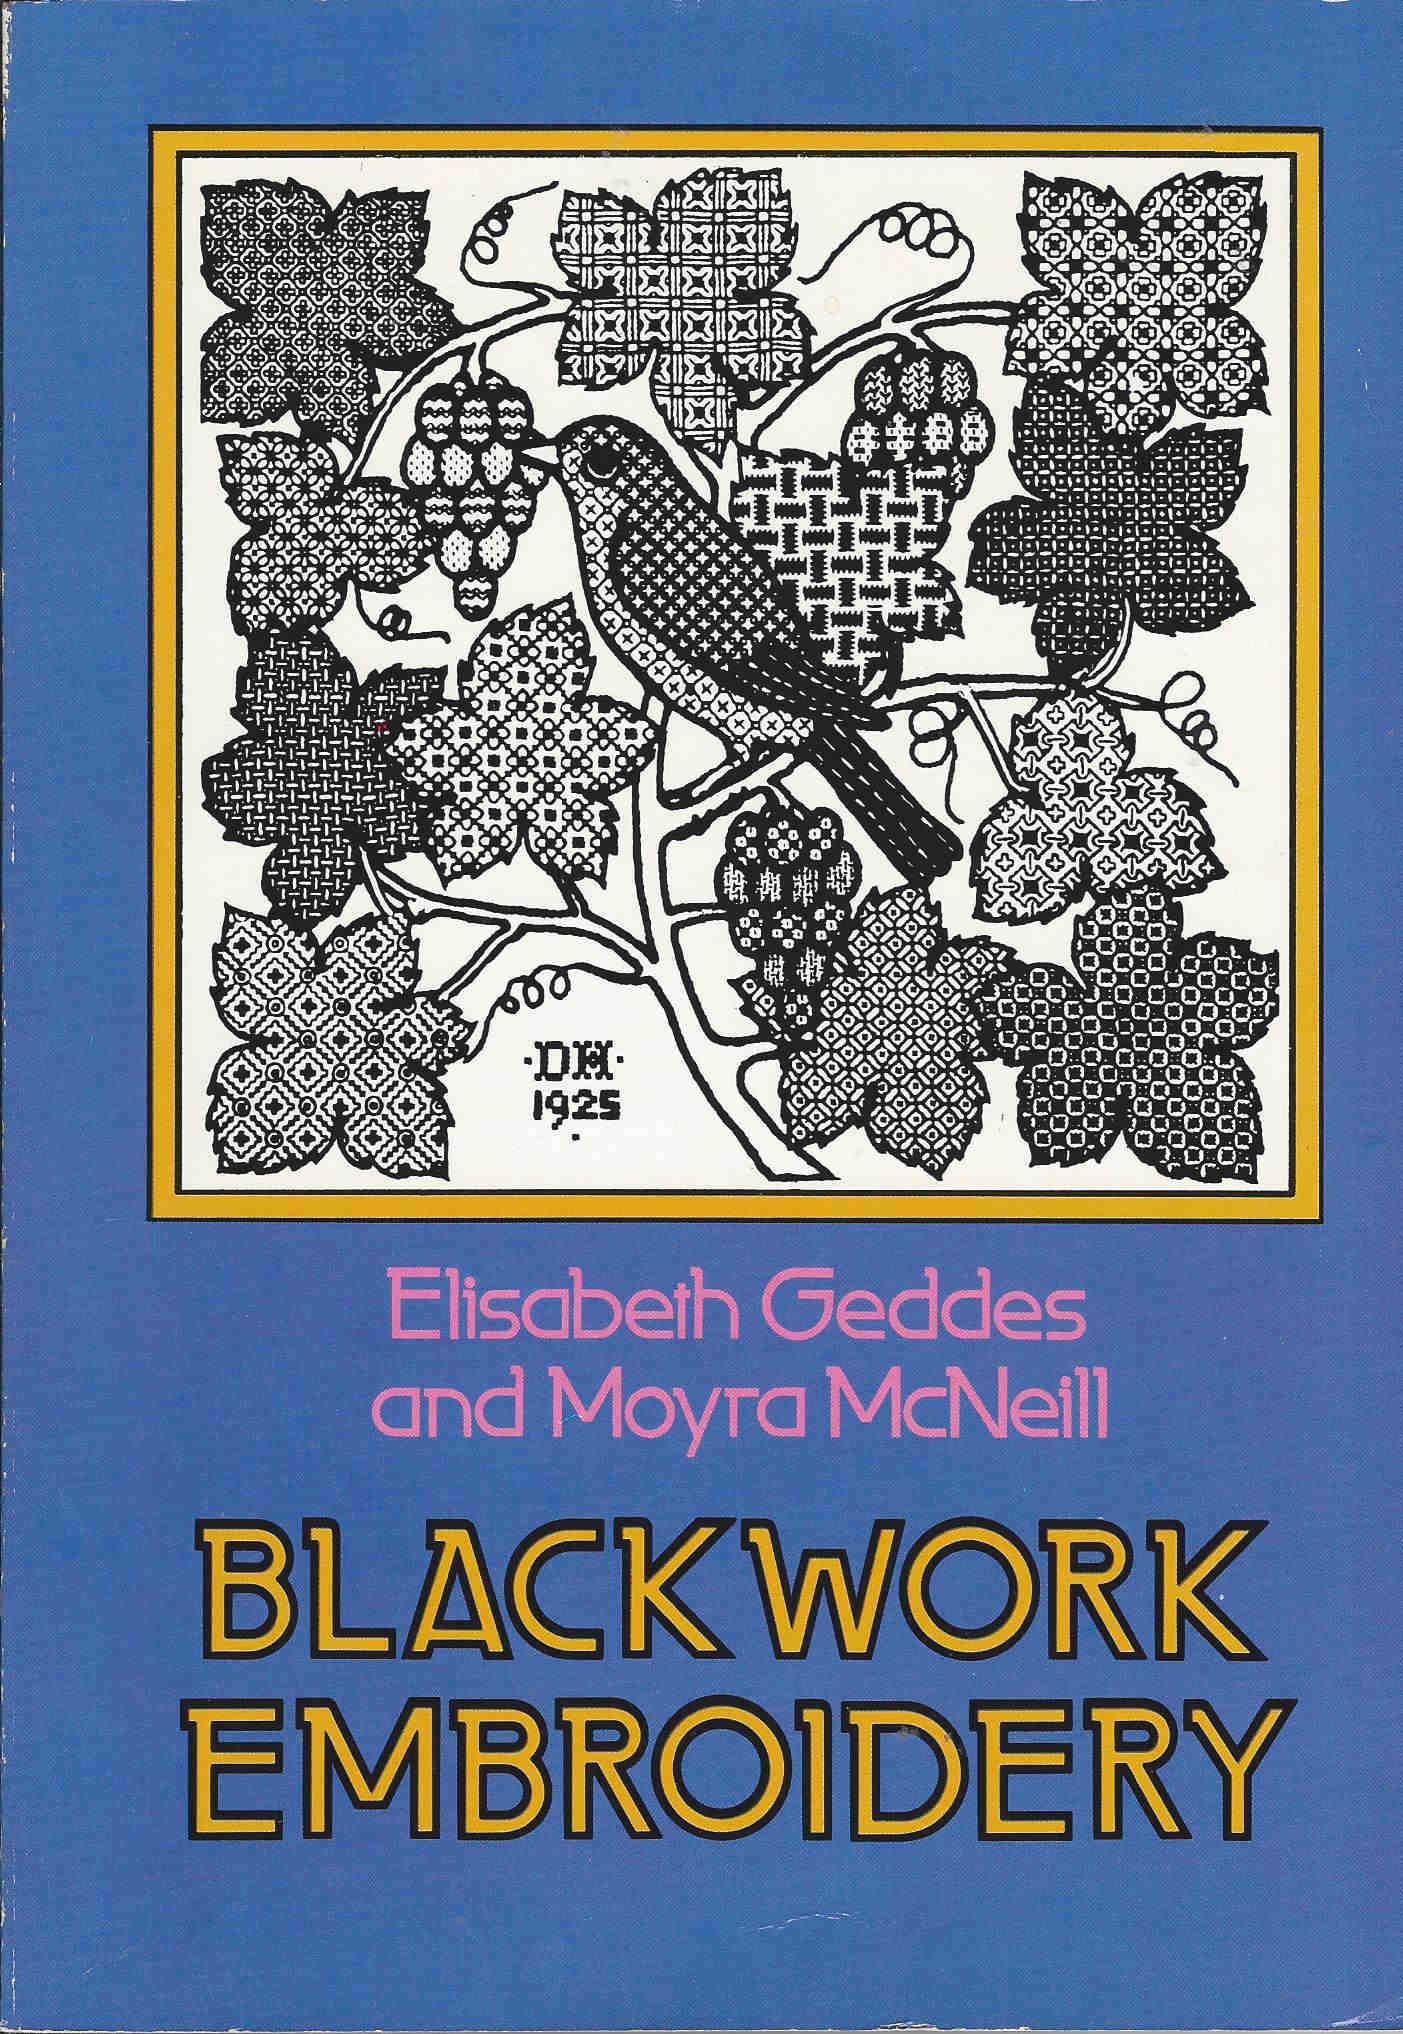 blackwork embroidery stitches book